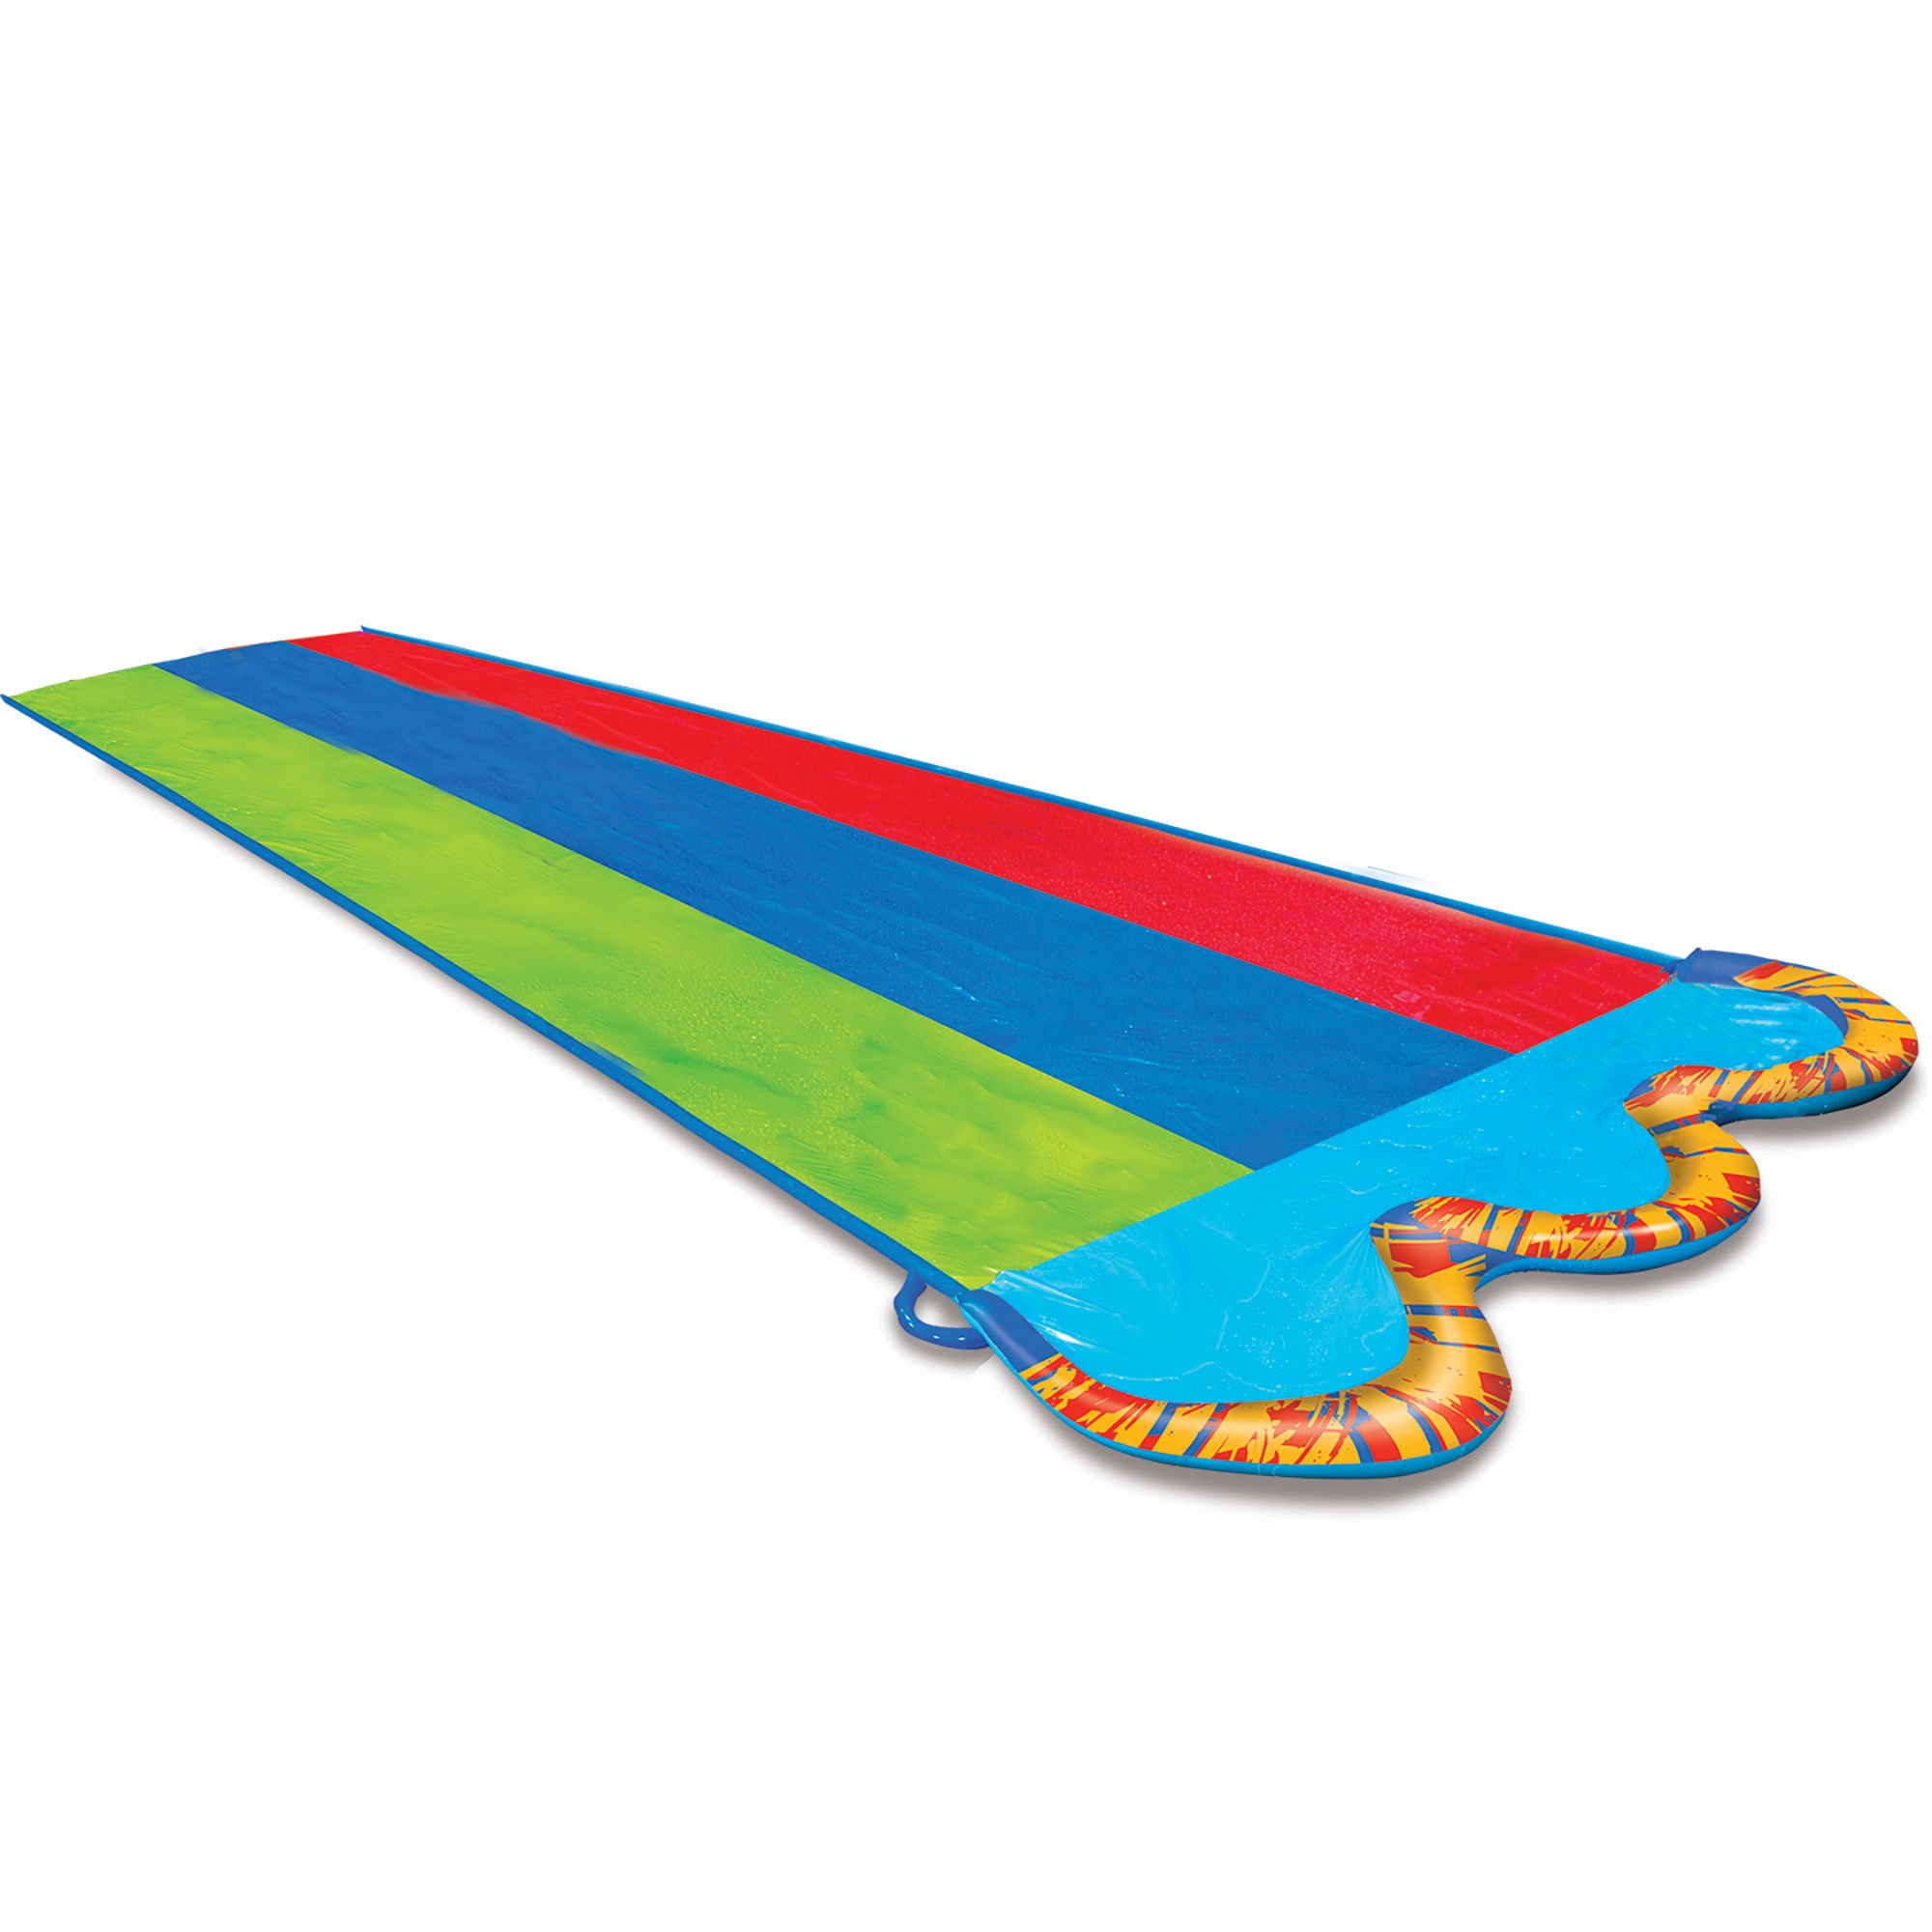 BANZAI Triple Racer Water Slide with 3 Bonus Body Boards by Banzai